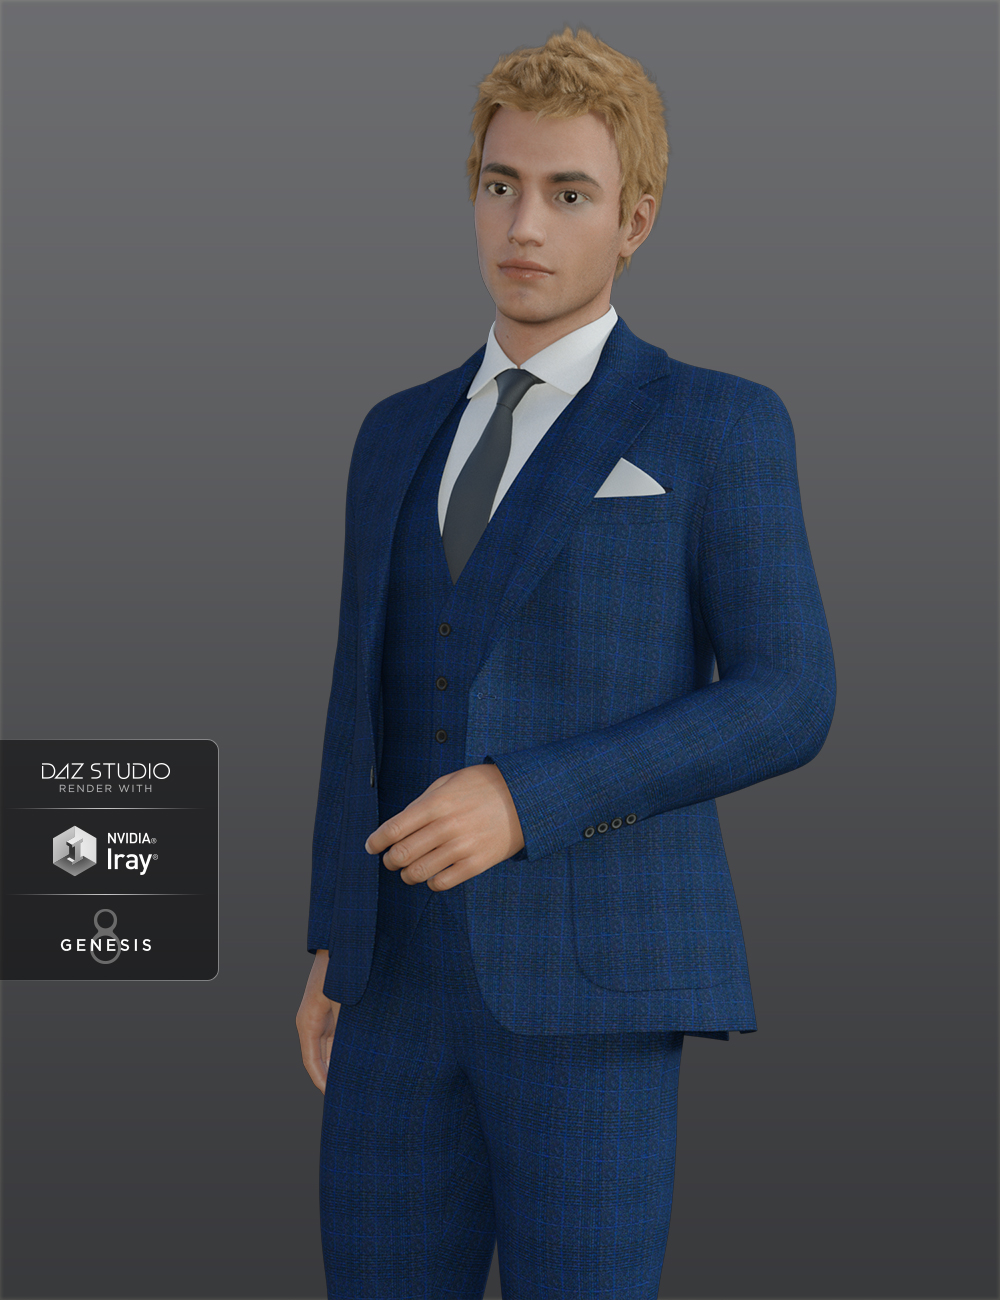 H&C Business Suit for Genesis 8 Male(s) by: IH Kang, 3D Models by Daz 3D